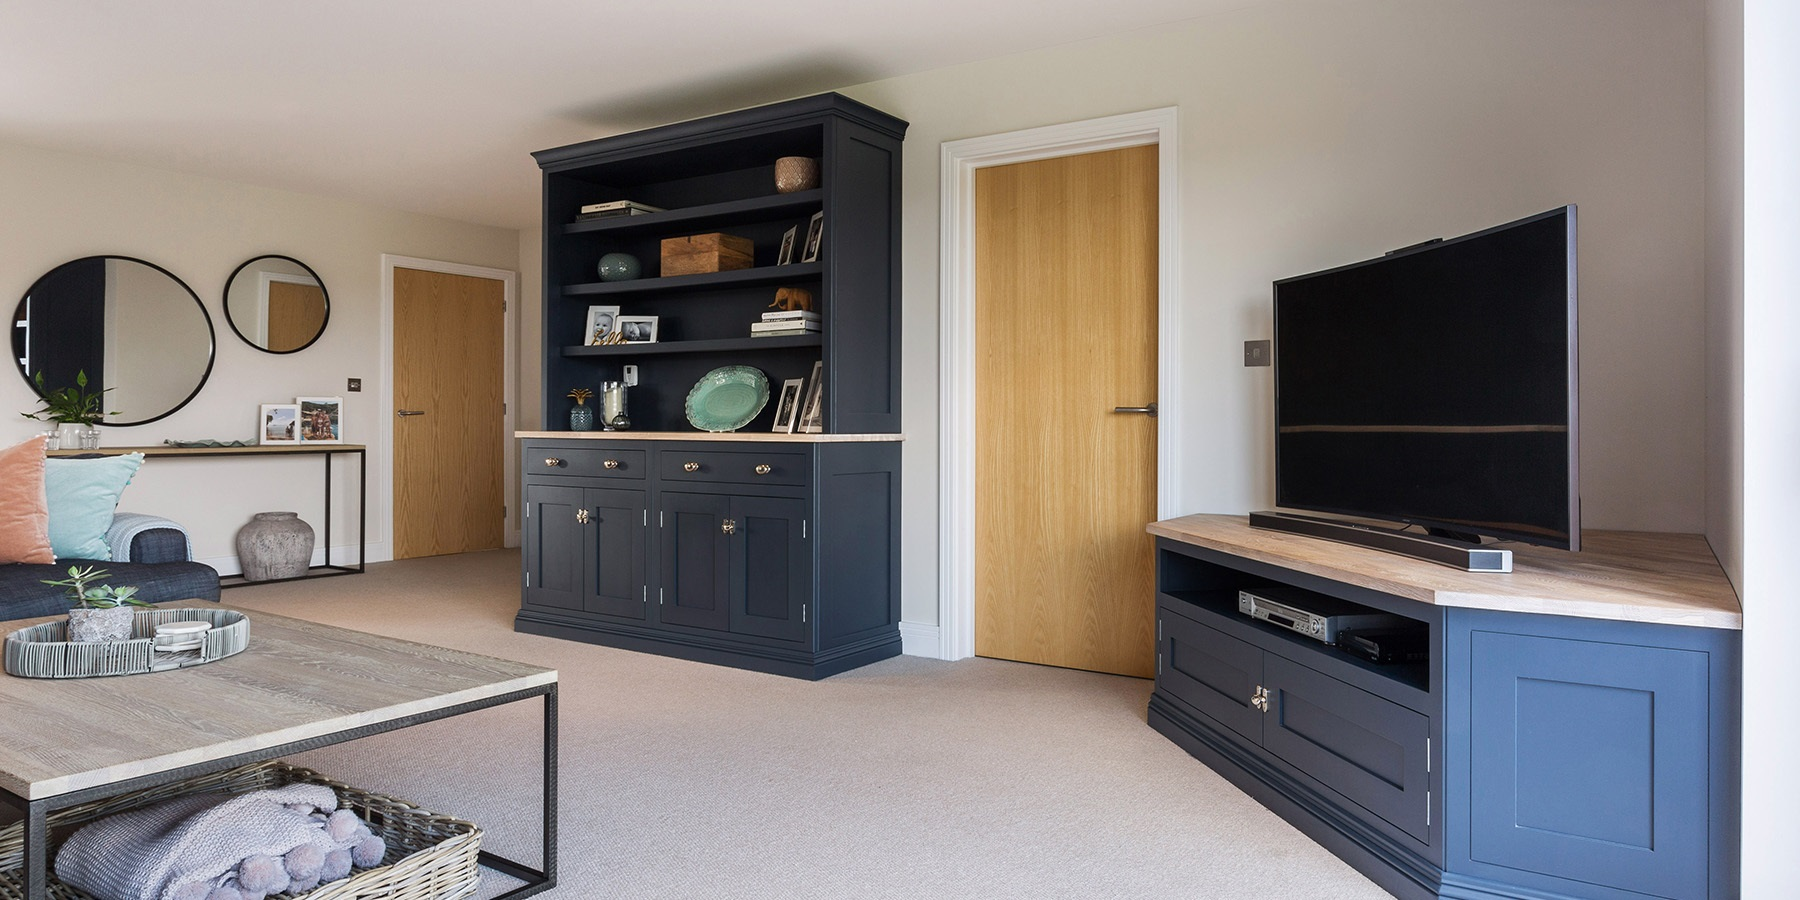 Handmade Living Room Furniture - Burlanes bespoke television unit and living room dresser.